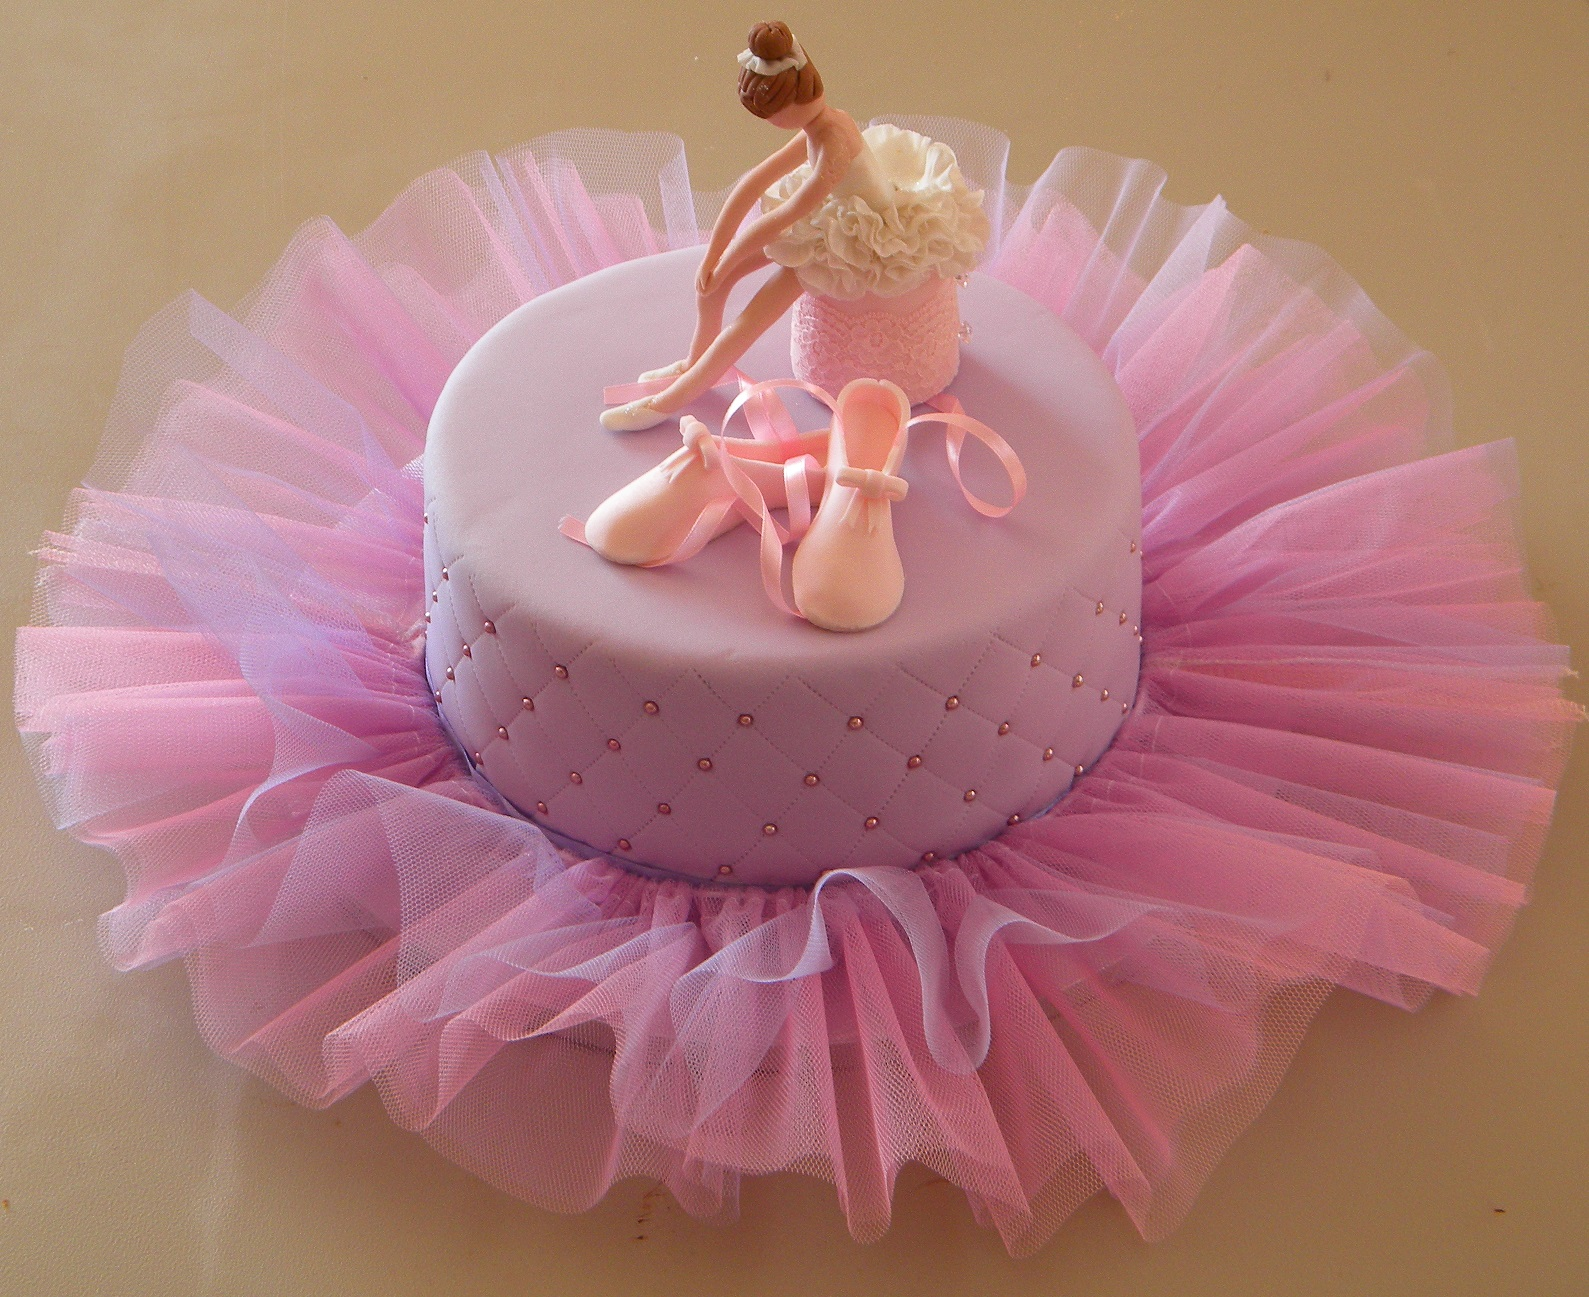 Bite me cupcakes and wrappers lilac pink ballerina cake for Ballet shoes decoration